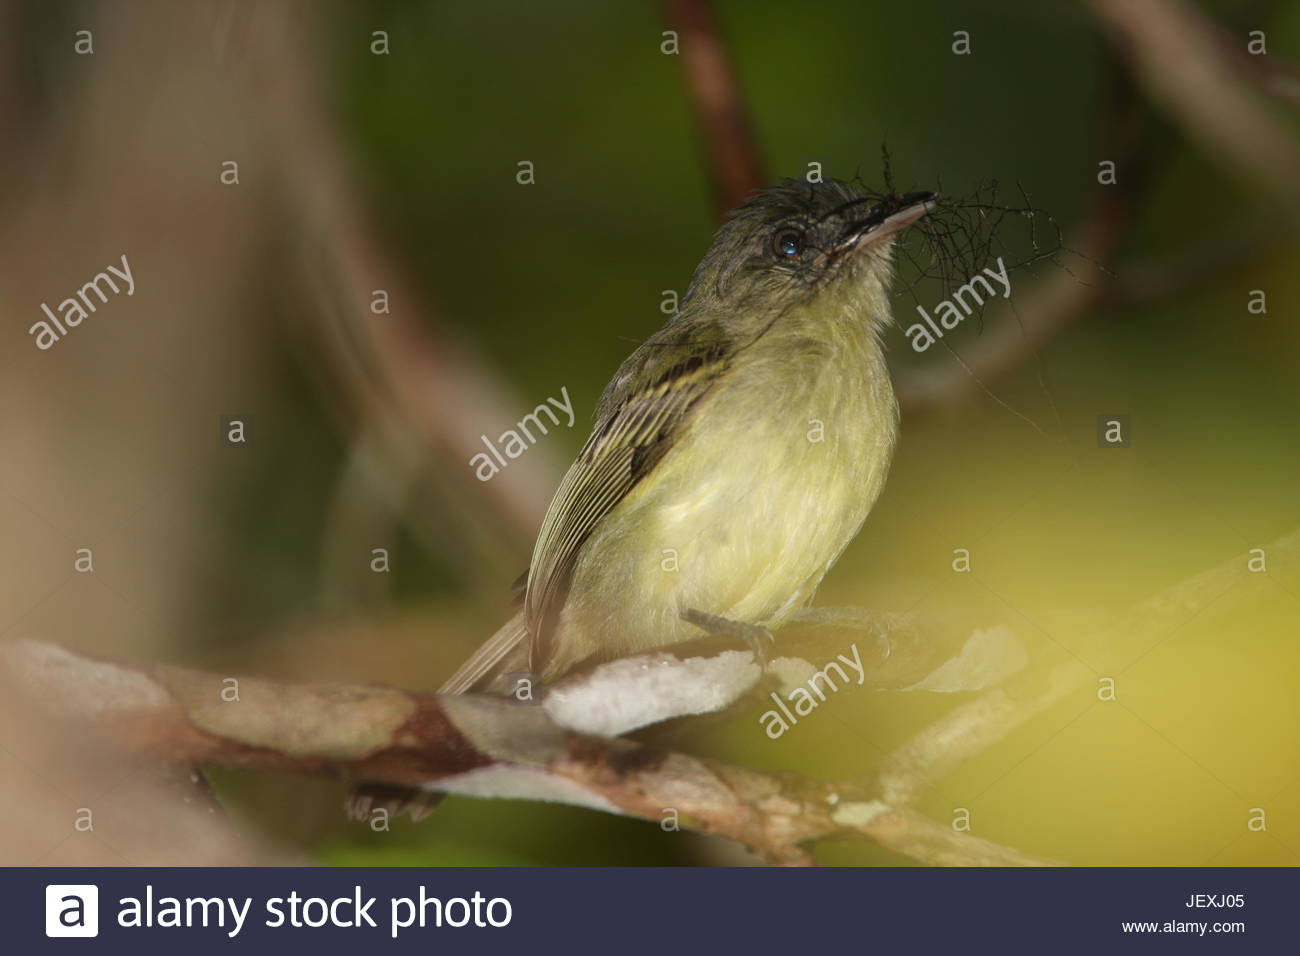 Grey-crowned flatbill or grey-crowned flycatcher, Tolmomyias poliocephalus, building a nest in Tafelberg Nature - Stock Image